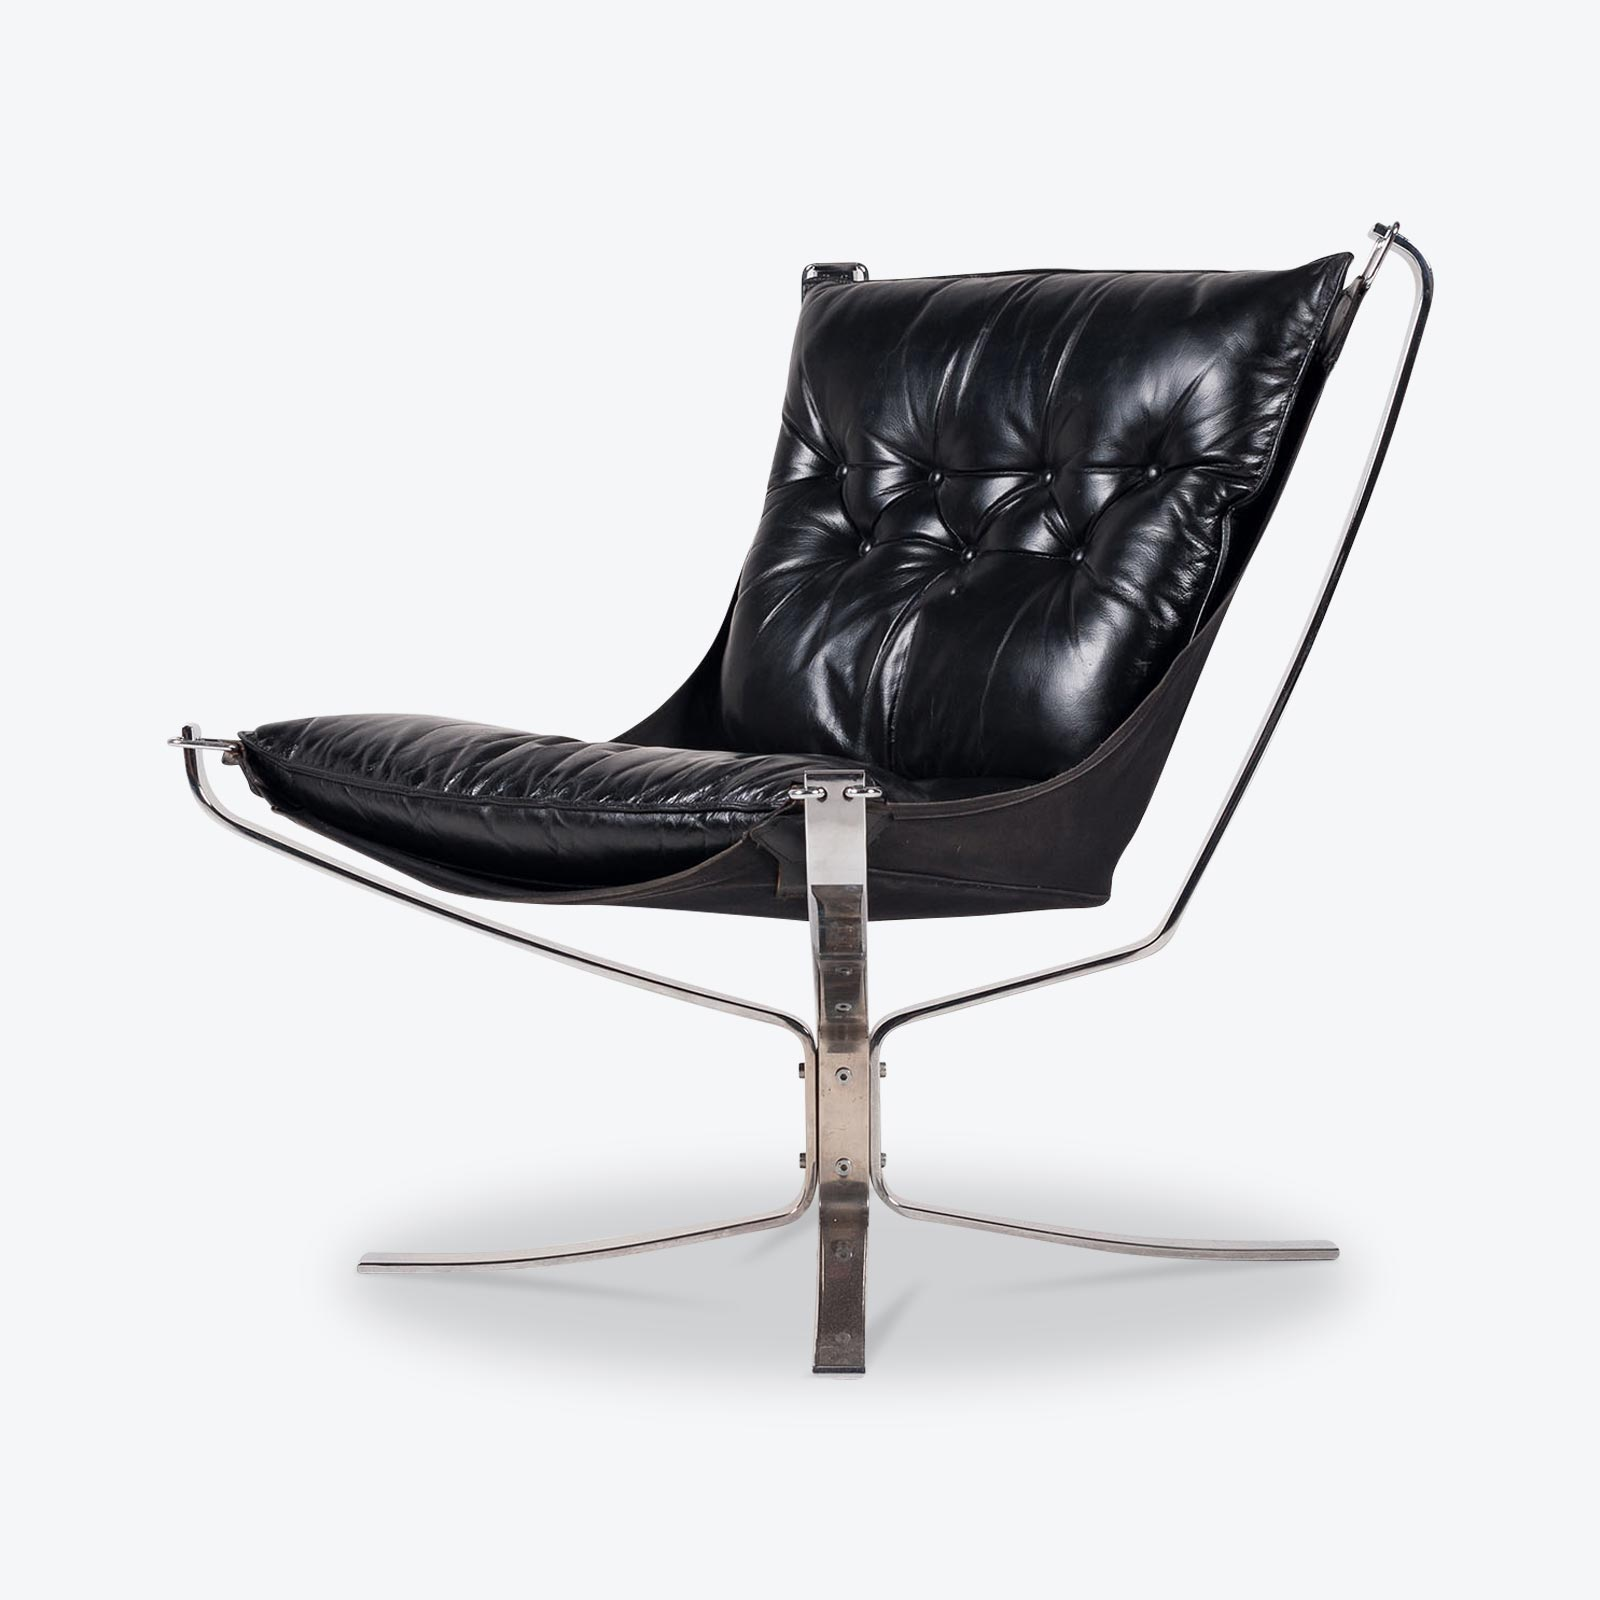 Falcon Chair Low Back Falcon Armchair By Sigurd Ressell For Vatne Mobler In Black Leather With Chrome Frame 1960s Norway